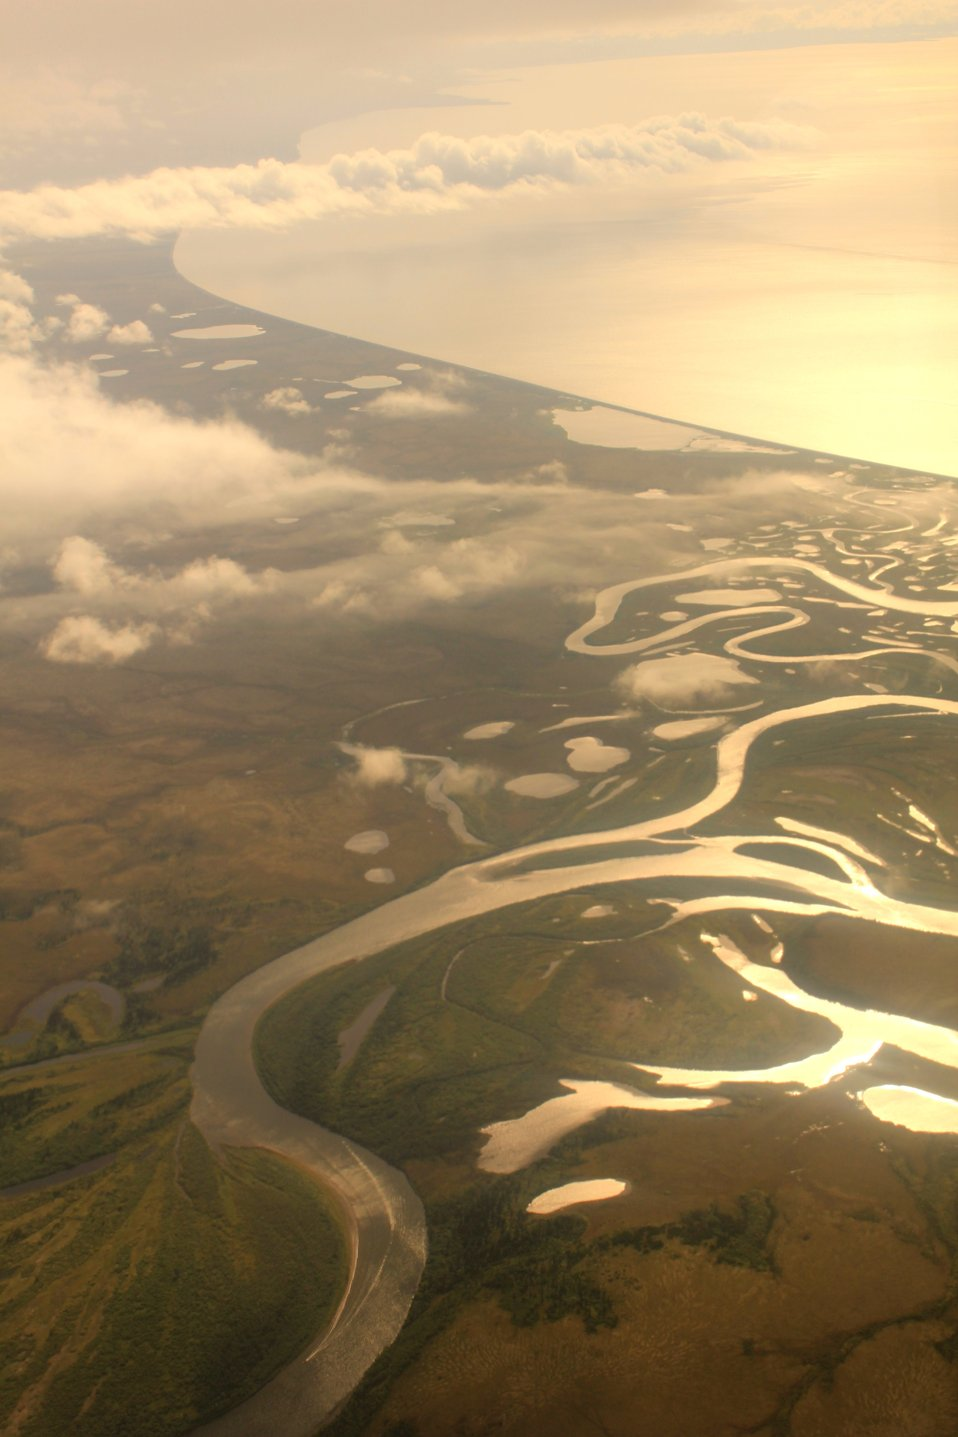 Flying over the Unalakleet River Delta in the late afternoon on the way to Anchorage. Norton Sound in upper right.